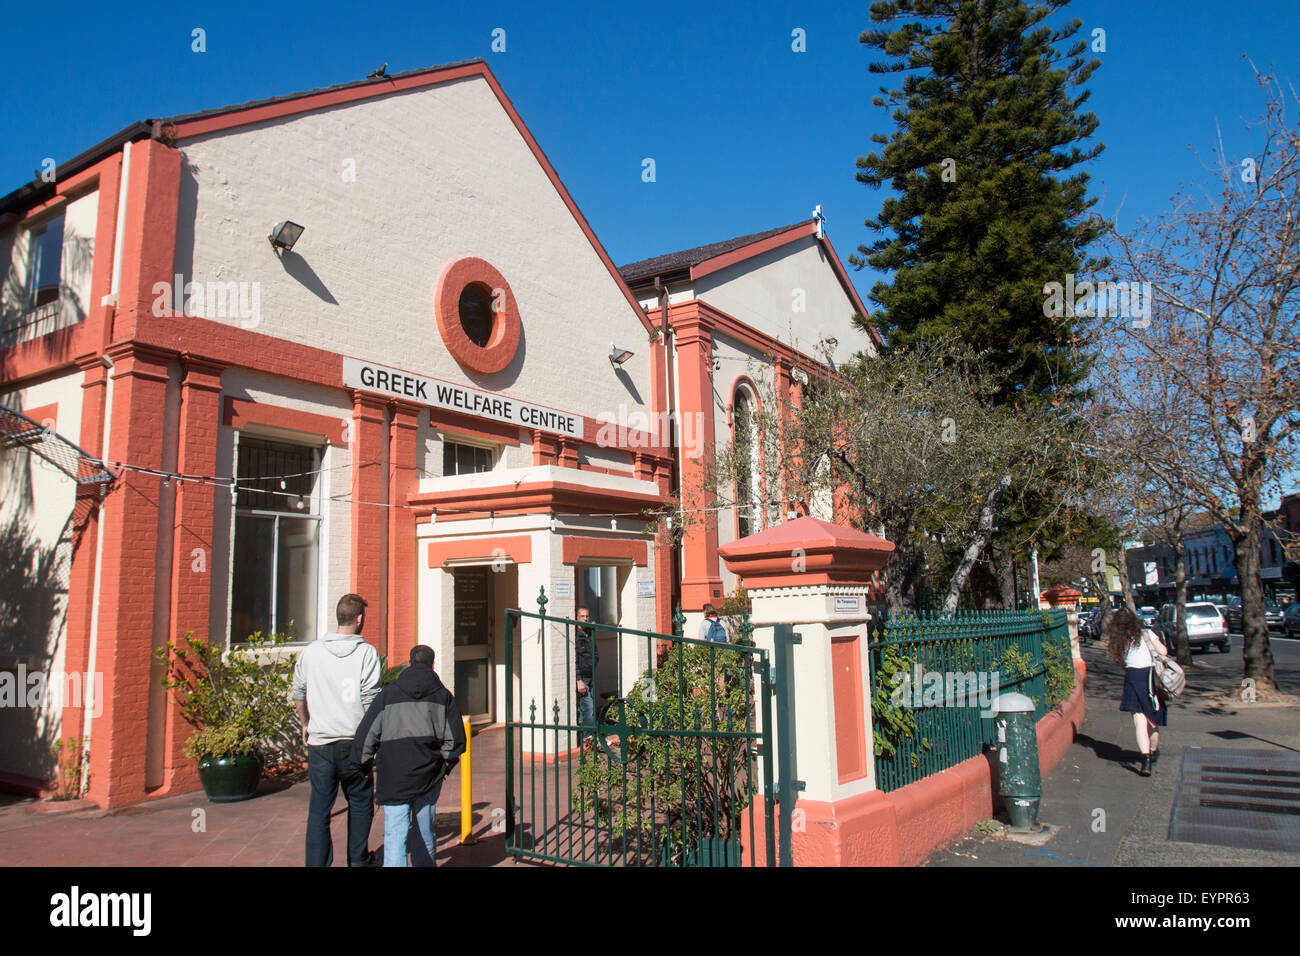 Greek welfare assistance centre in Newtown, inner suburb of Sydney,new south wales,australia - Stock Image